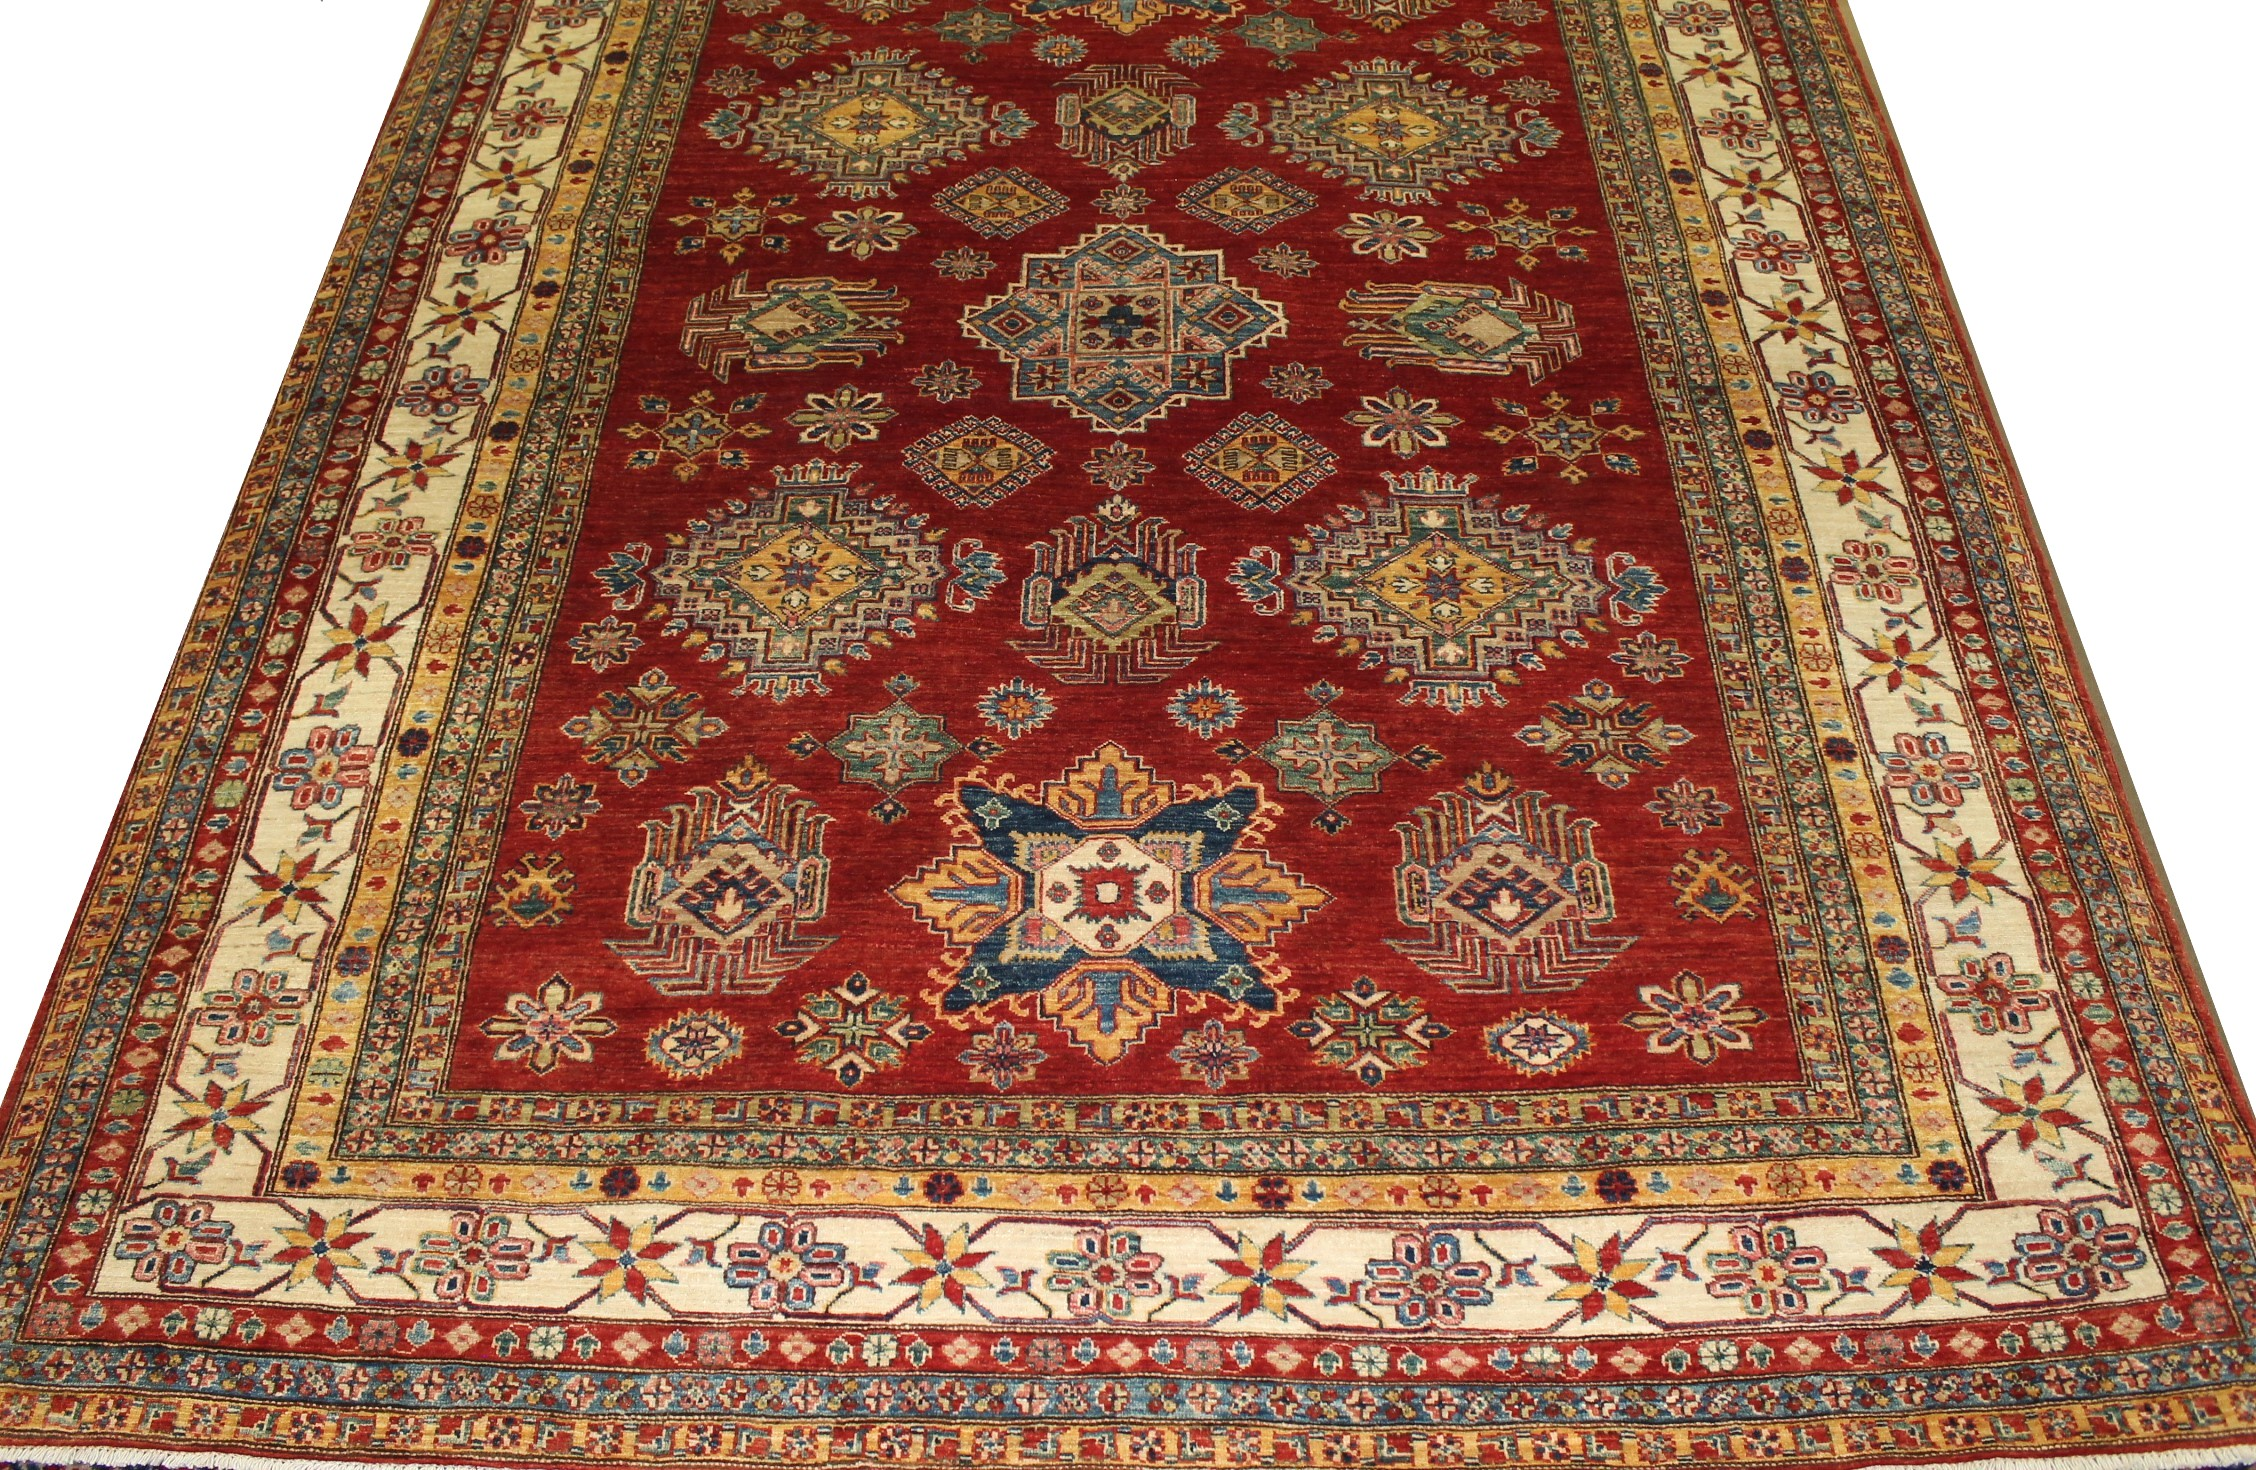 8x10  Hand Knotted Wool Area Rug - MR022815